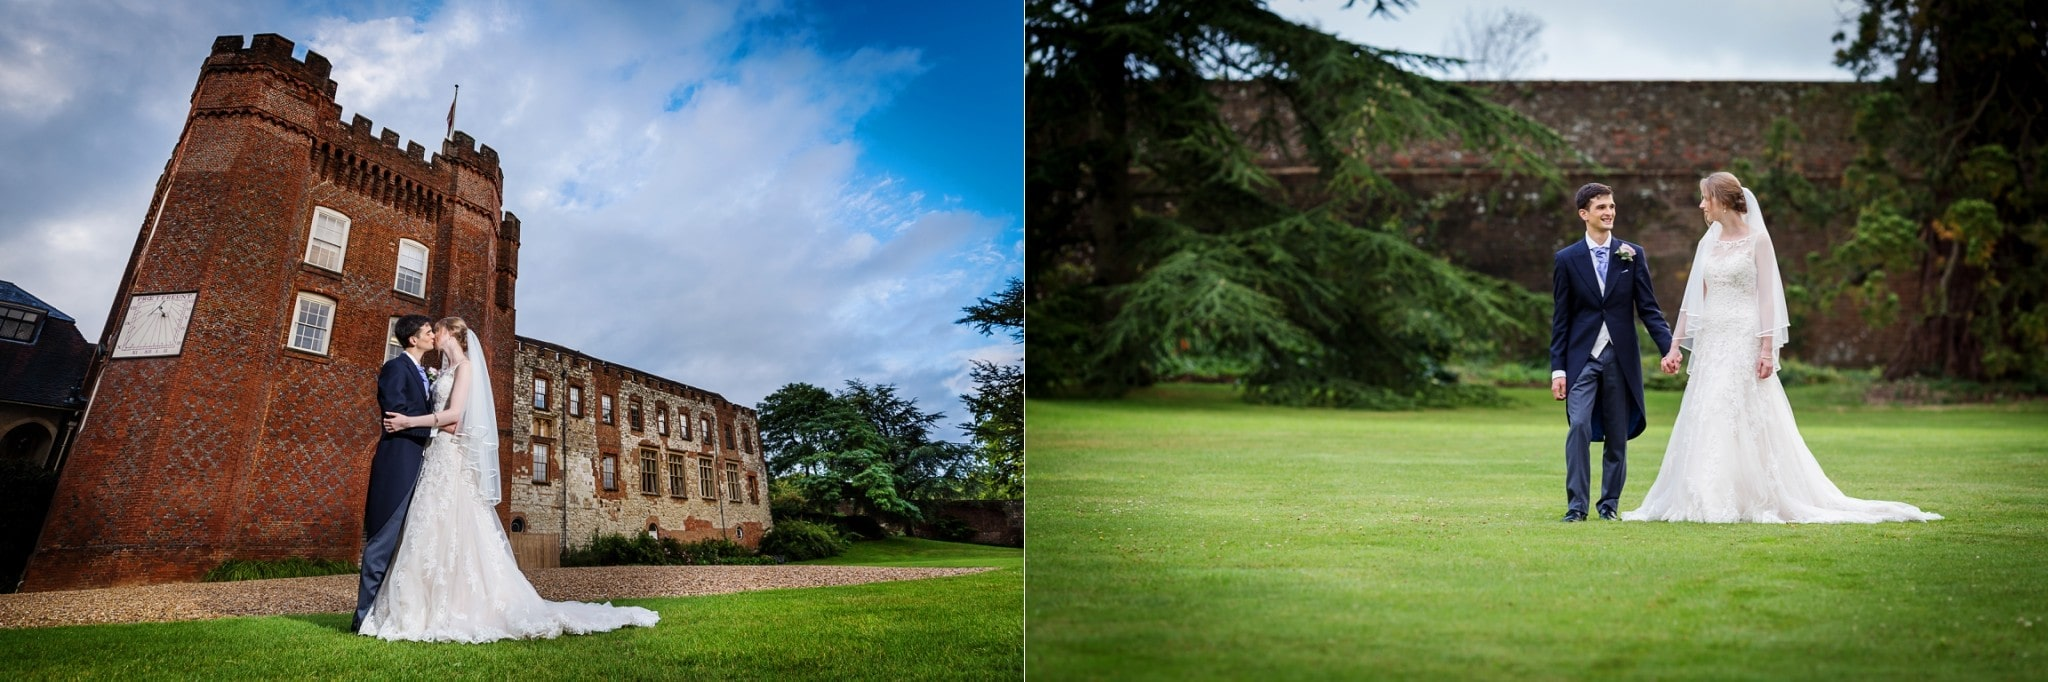 Farnham Castle Wedding Photography - Steph and Gee 23